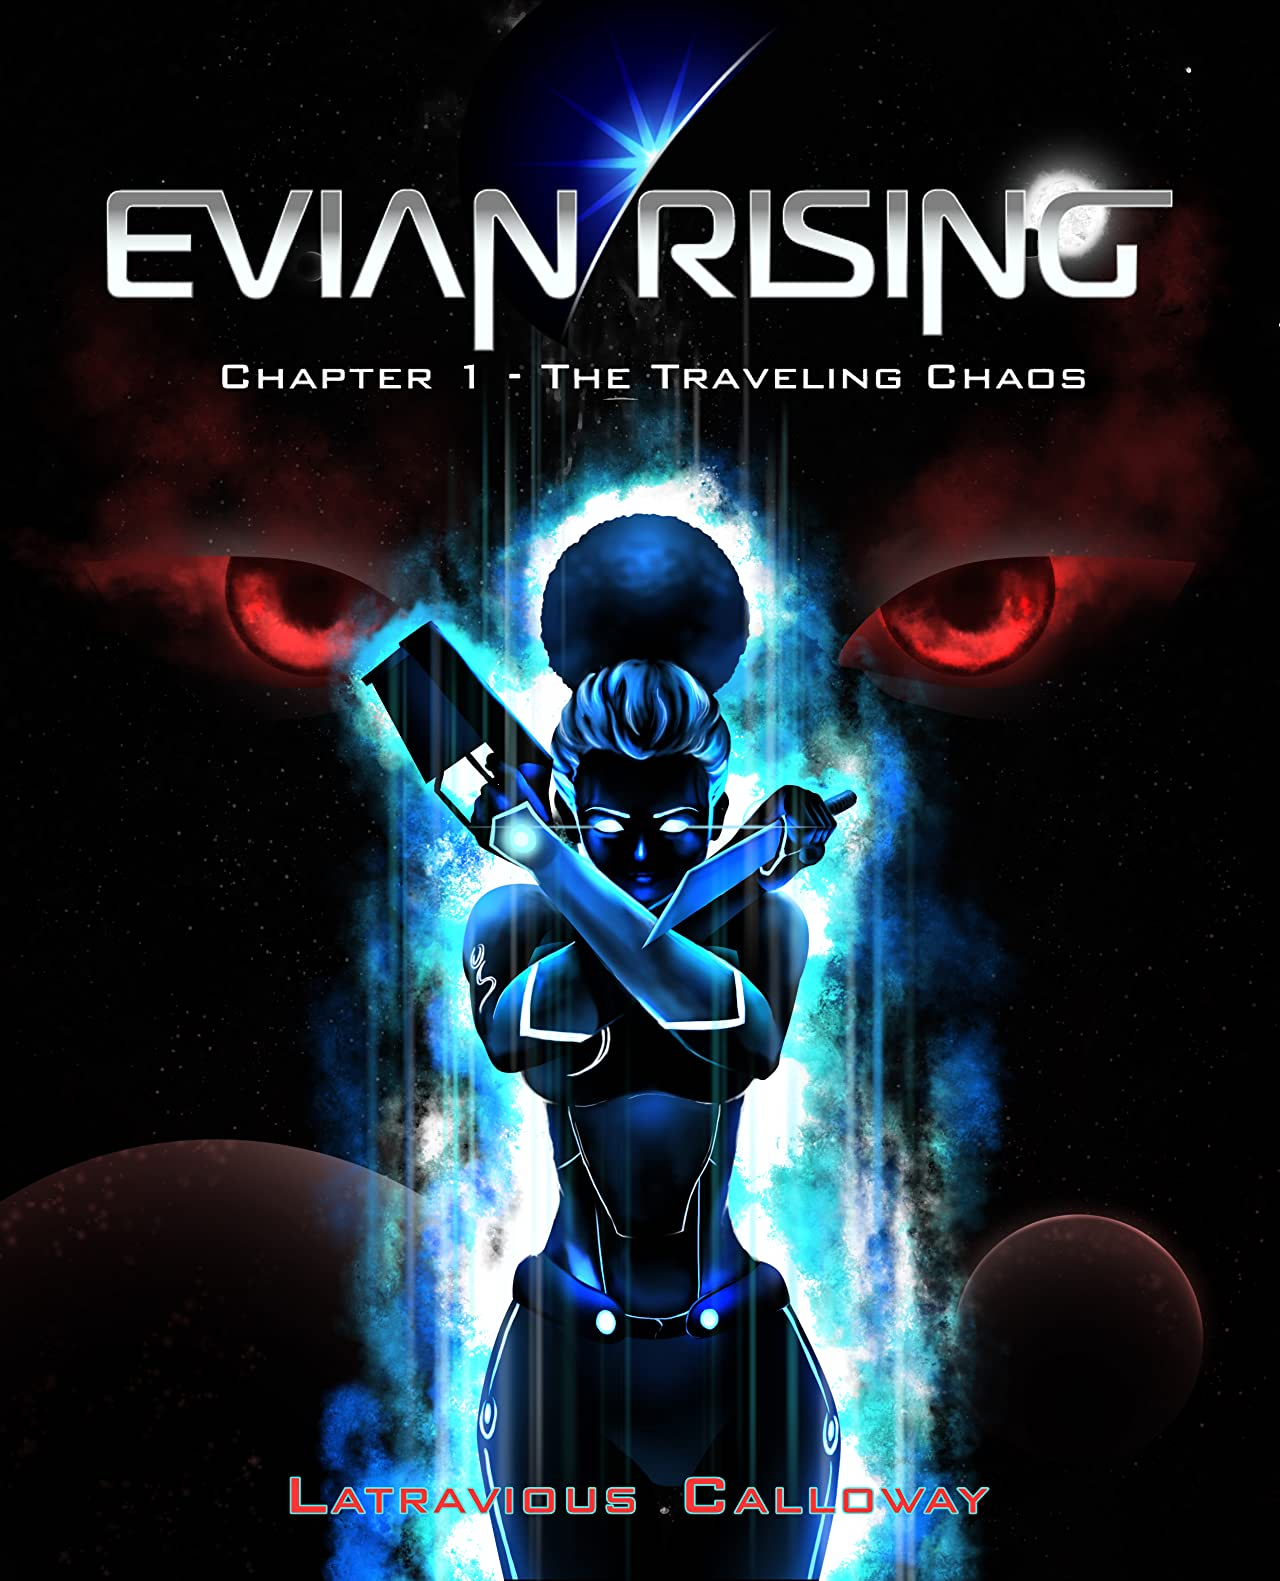 Evian Rising Vol. 1: The Traveling Chaos